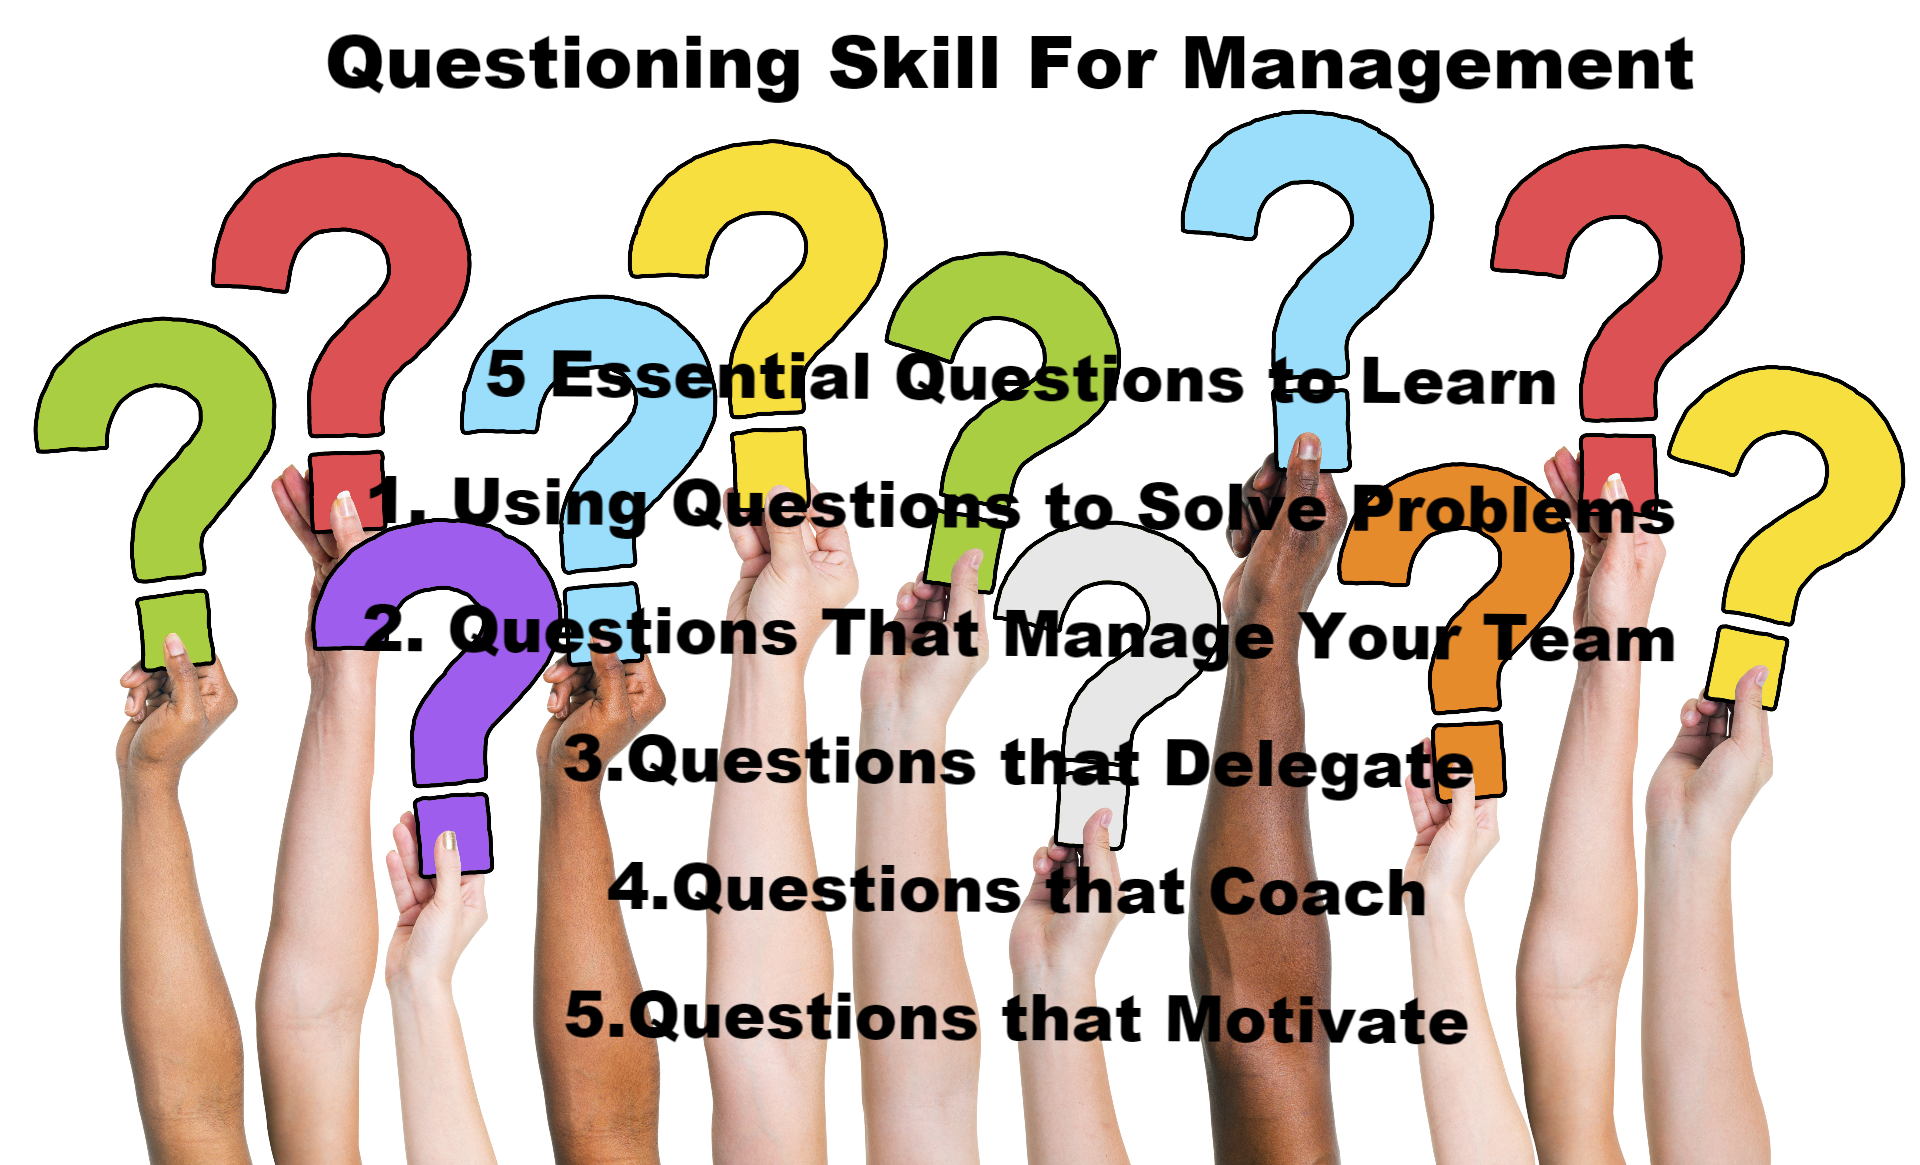 Questioning Skill For Management